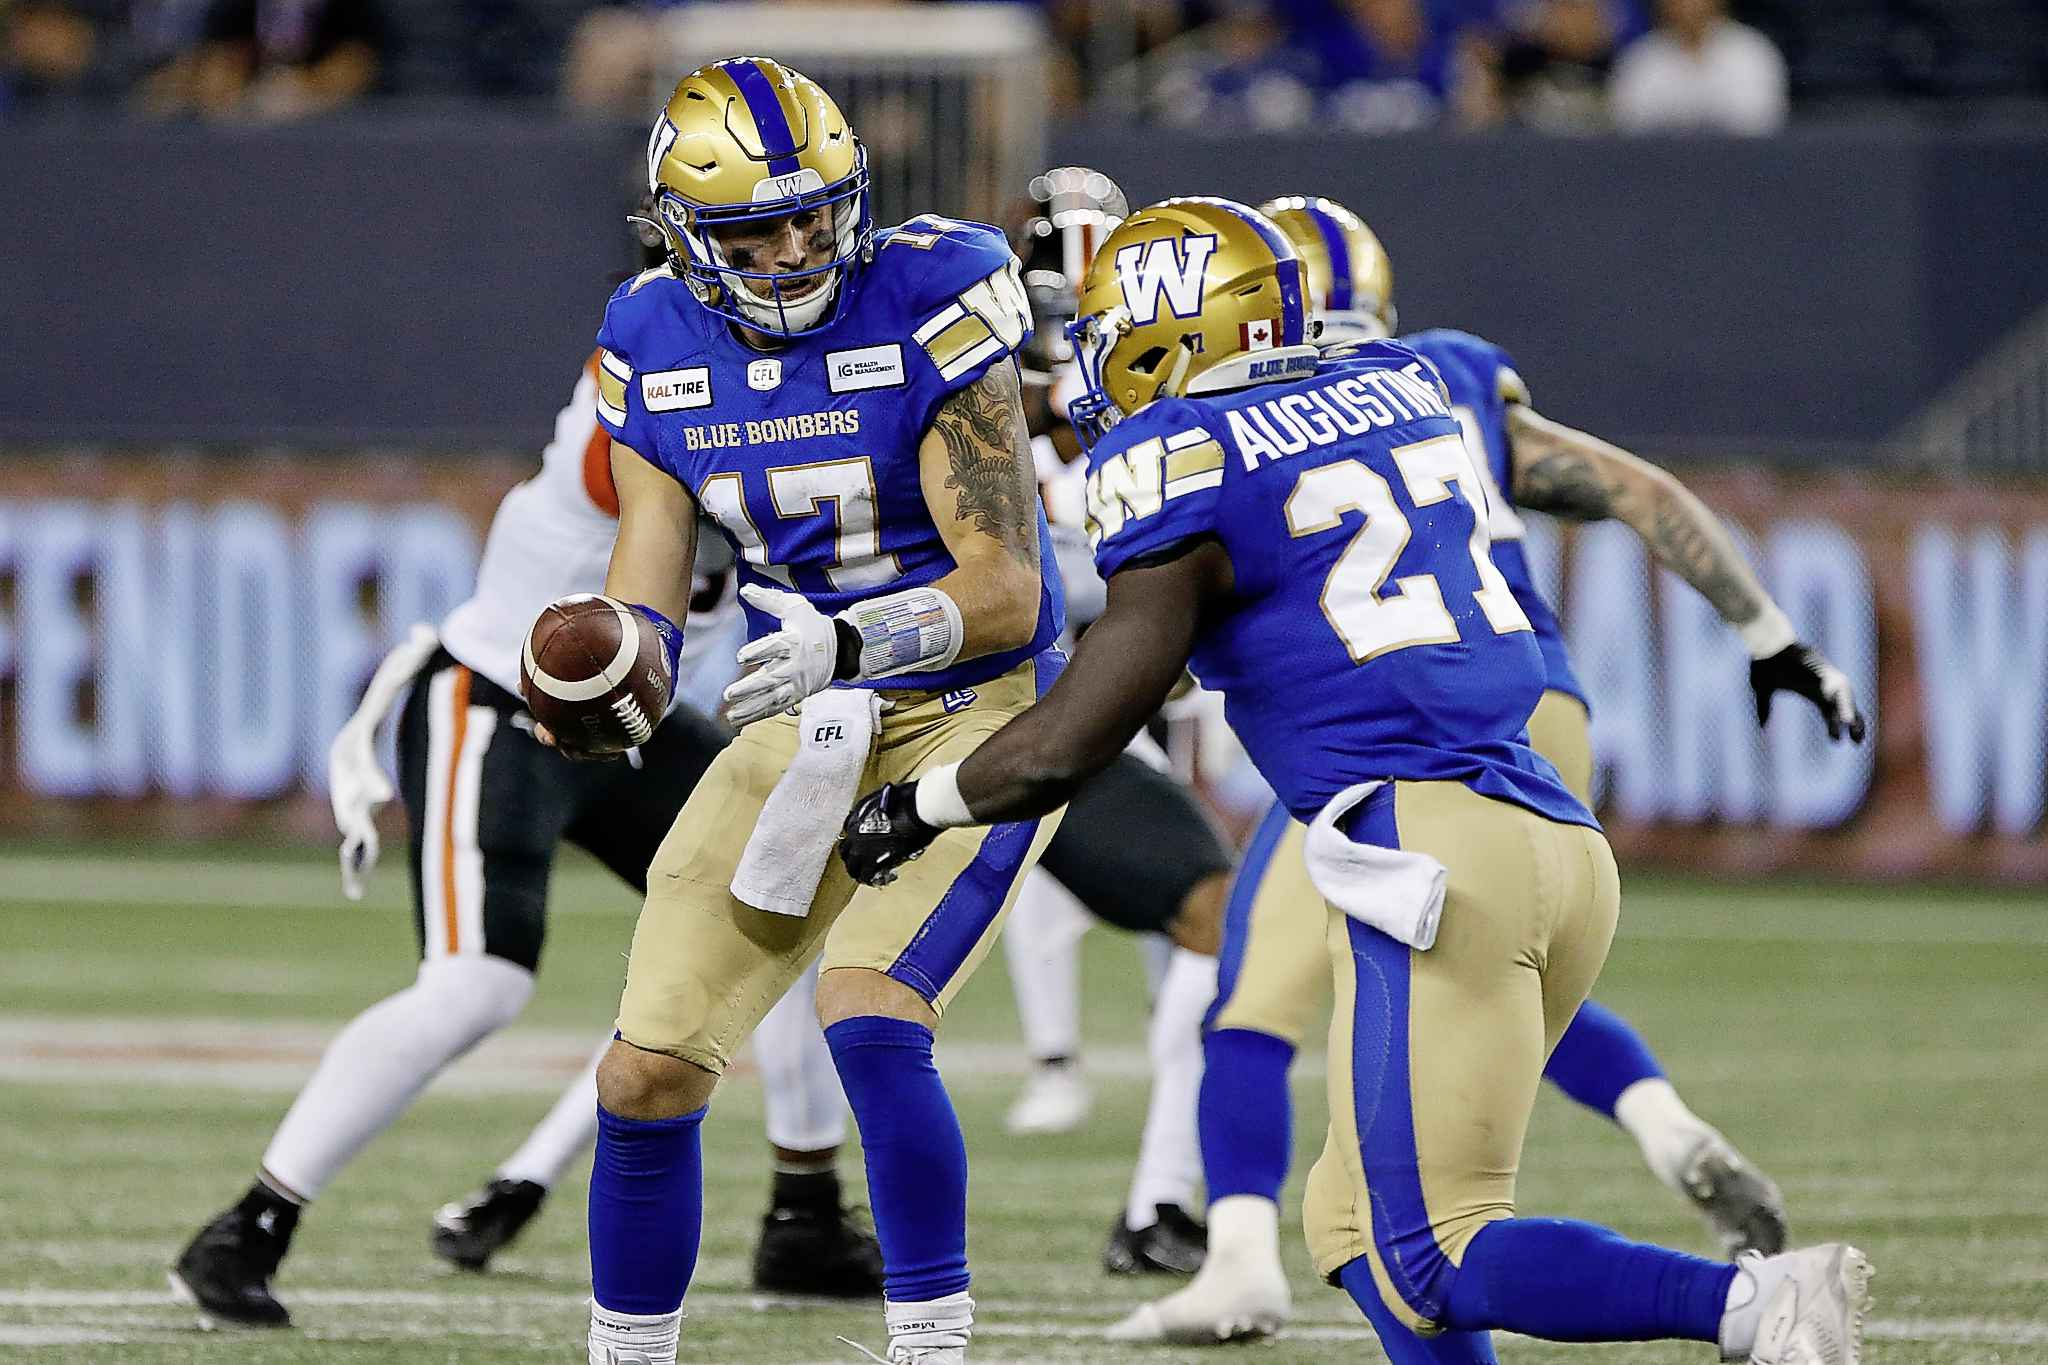 JOHN WOODS / THE CANADIAN PRESS FILES</p><p>Blue Bombers quarterback Chris Streveler hands off to Johnny Augustine against the B.C. Lions during the second half.</p>